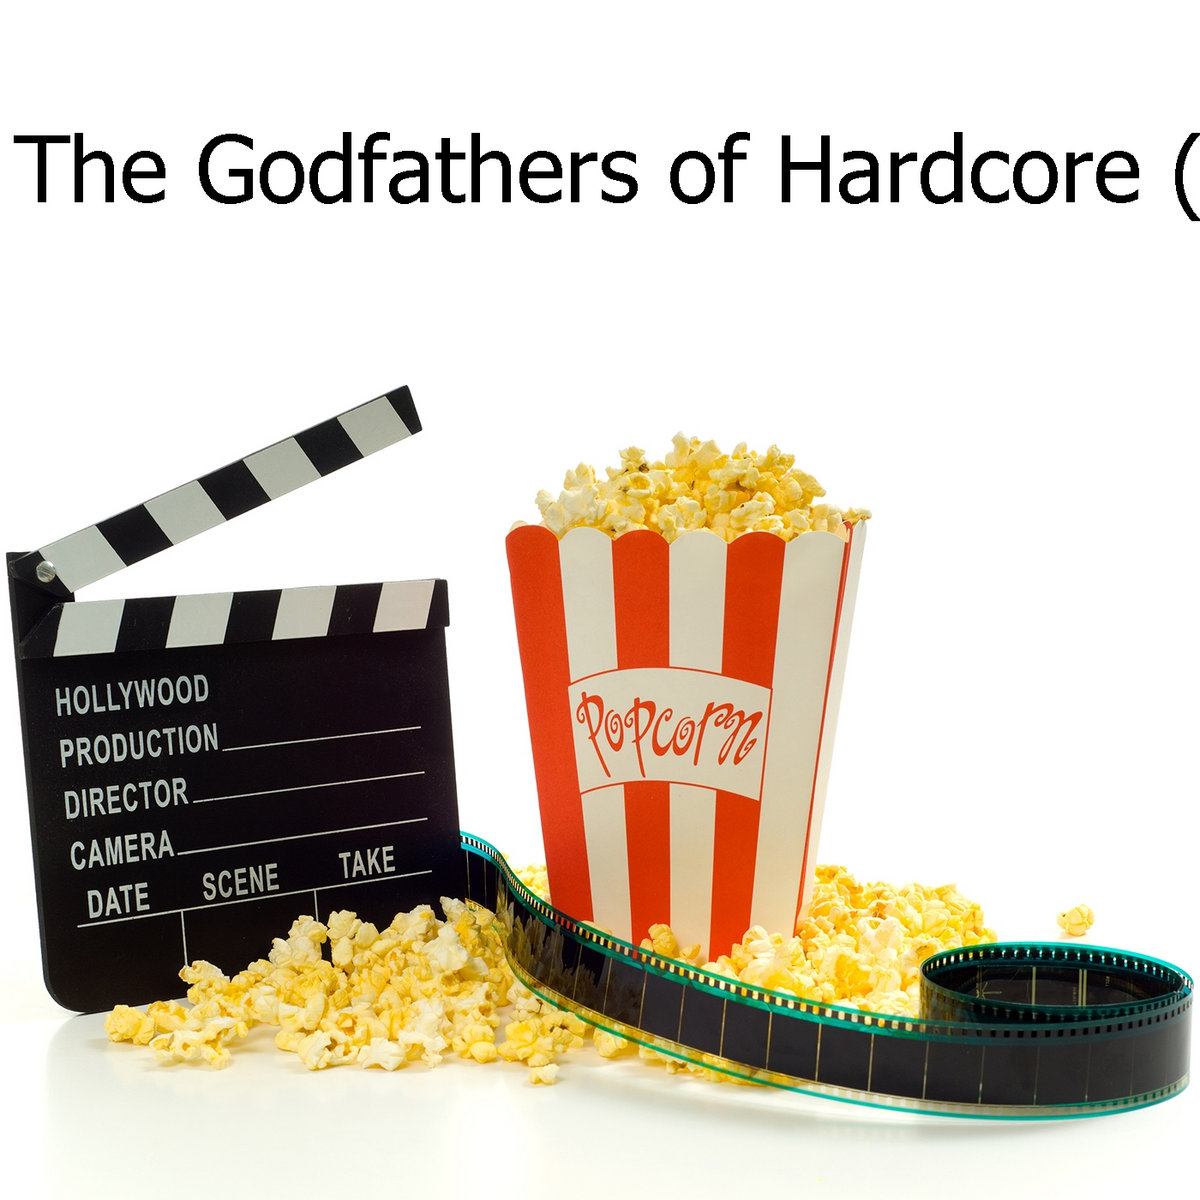 hd movie full watch The Godfathers of Hardcore